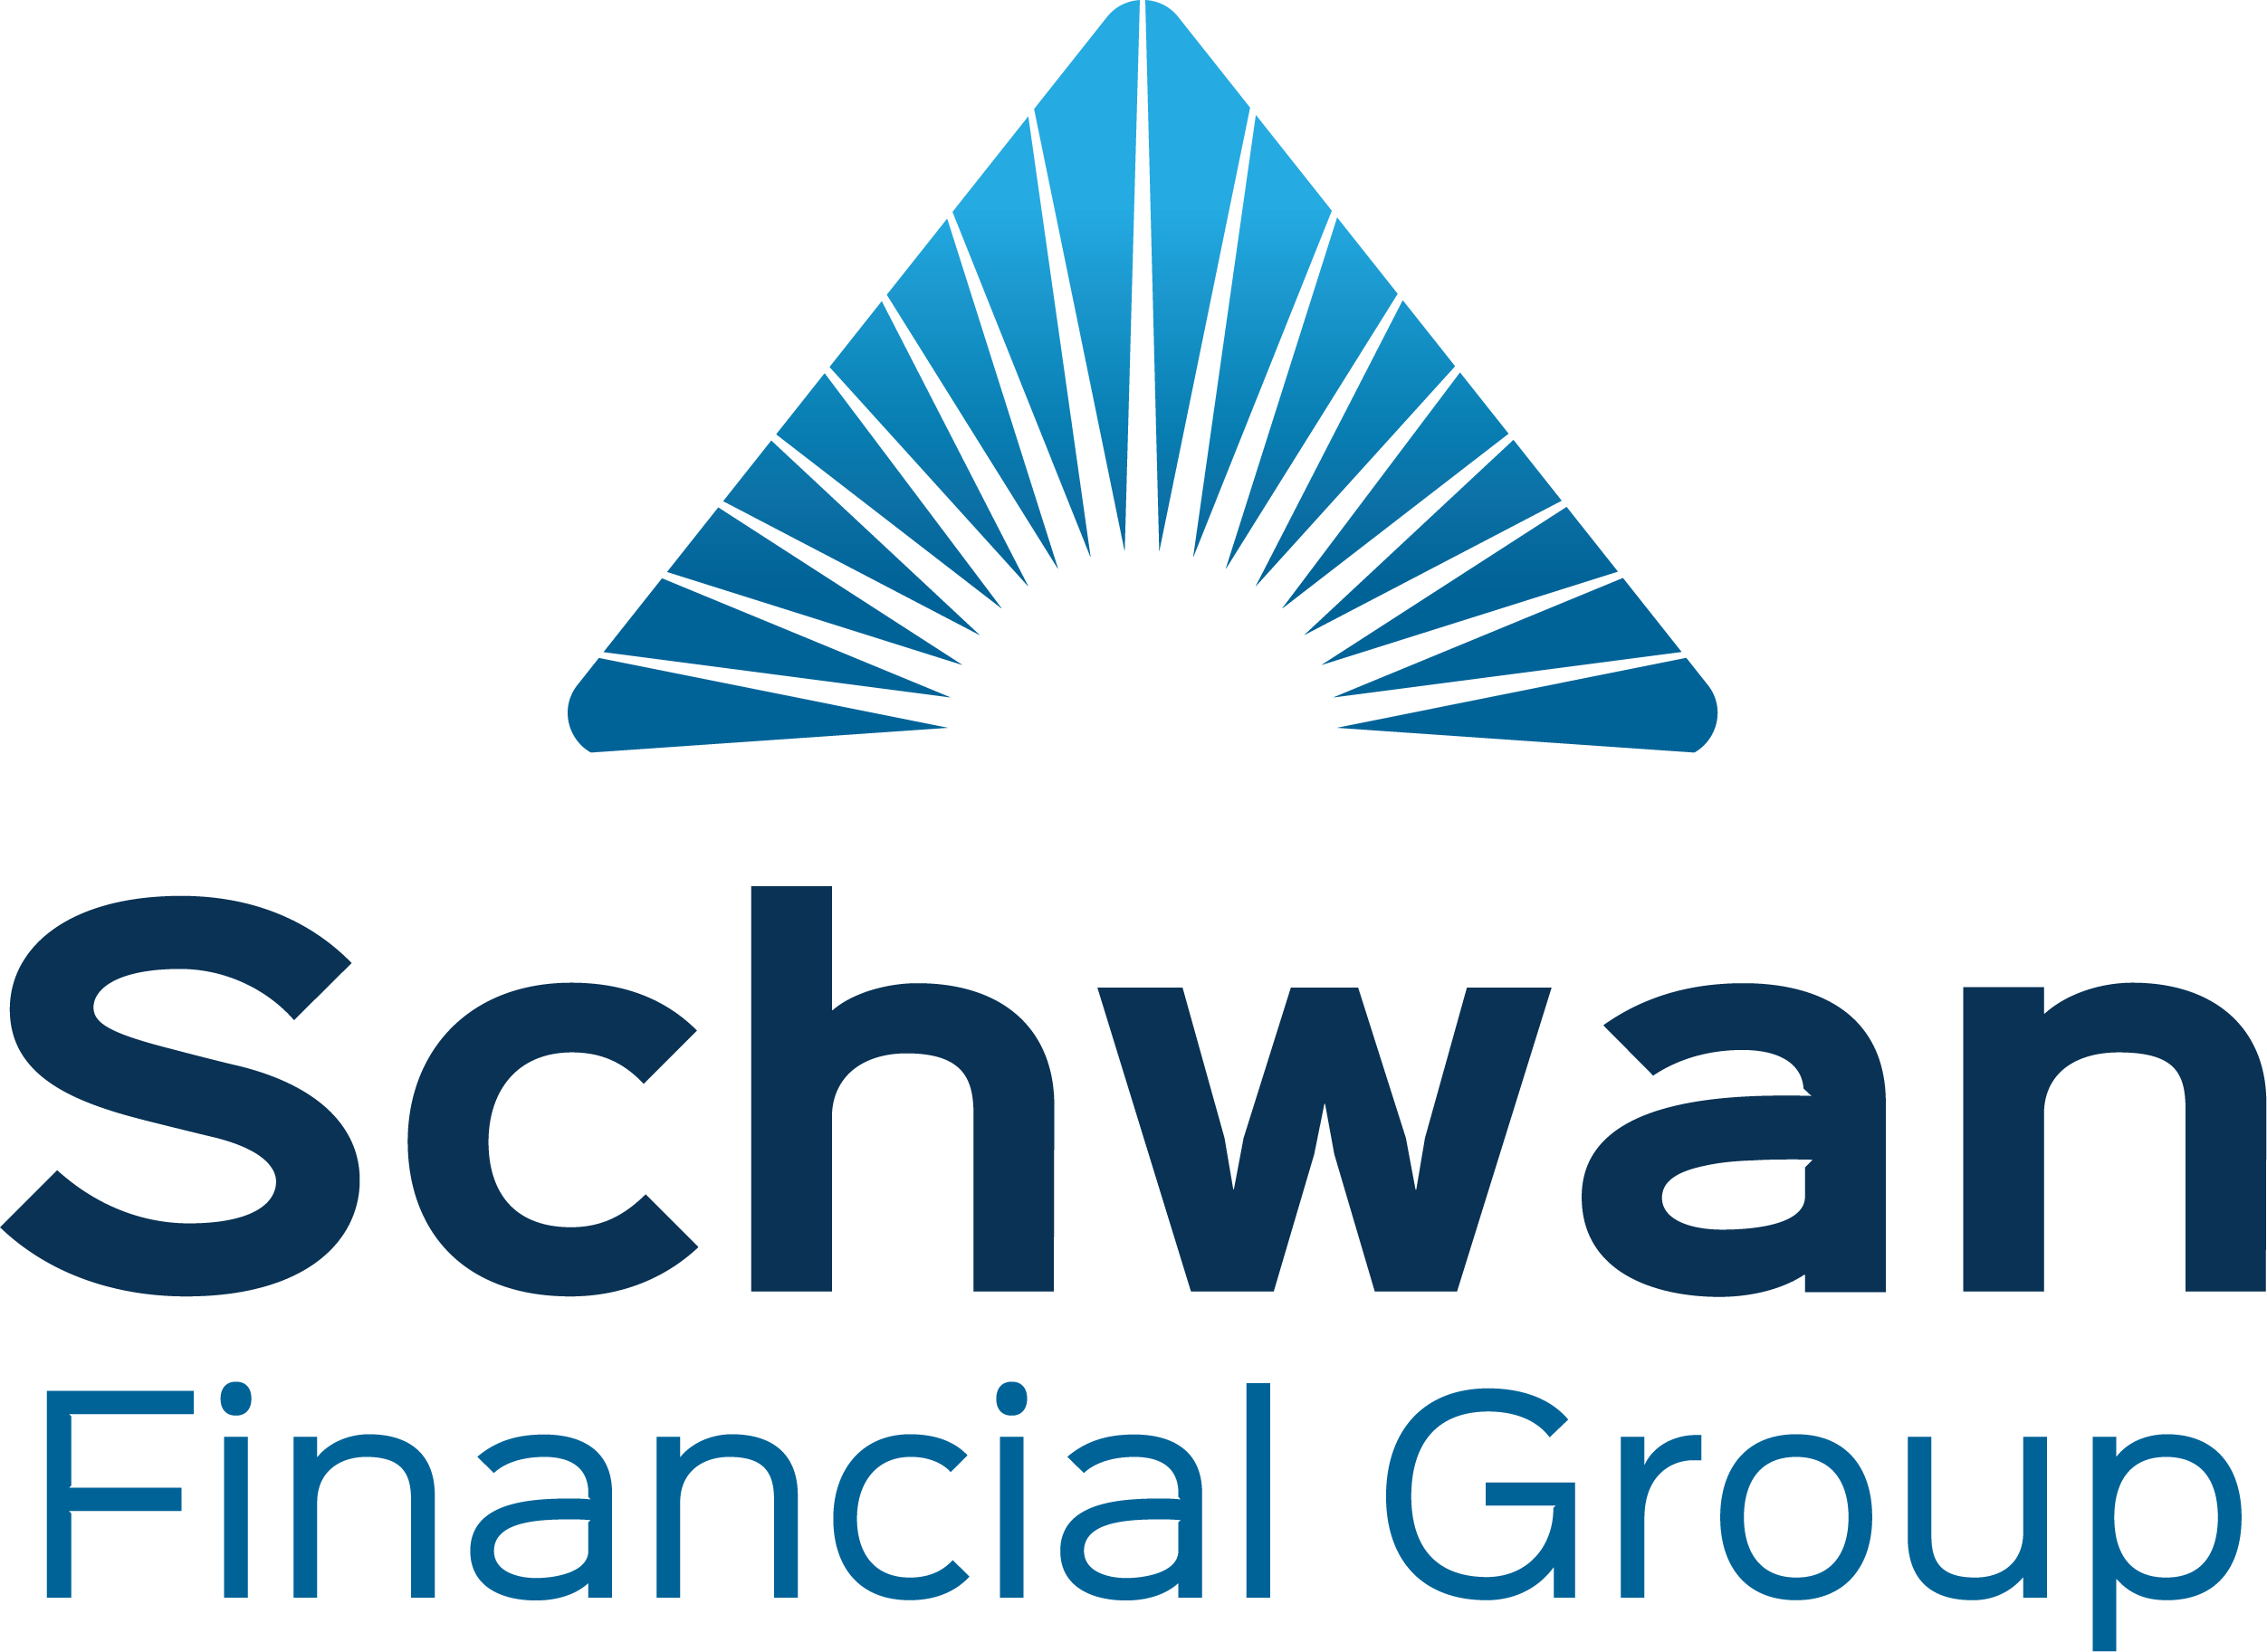 schwan financial group logo